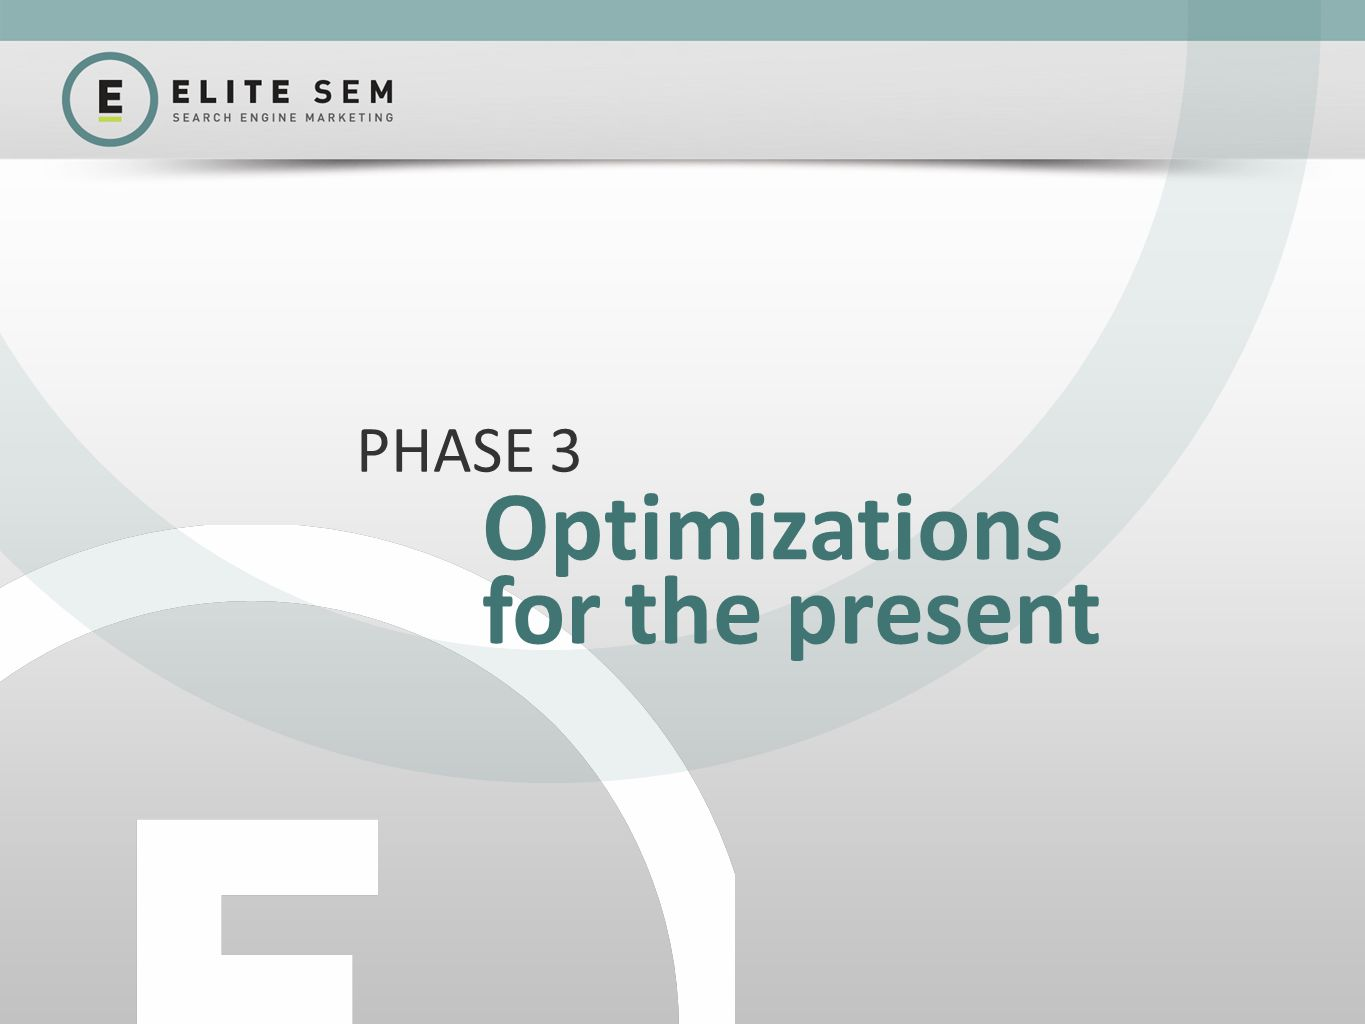 Optimizations for the present PHASE 3